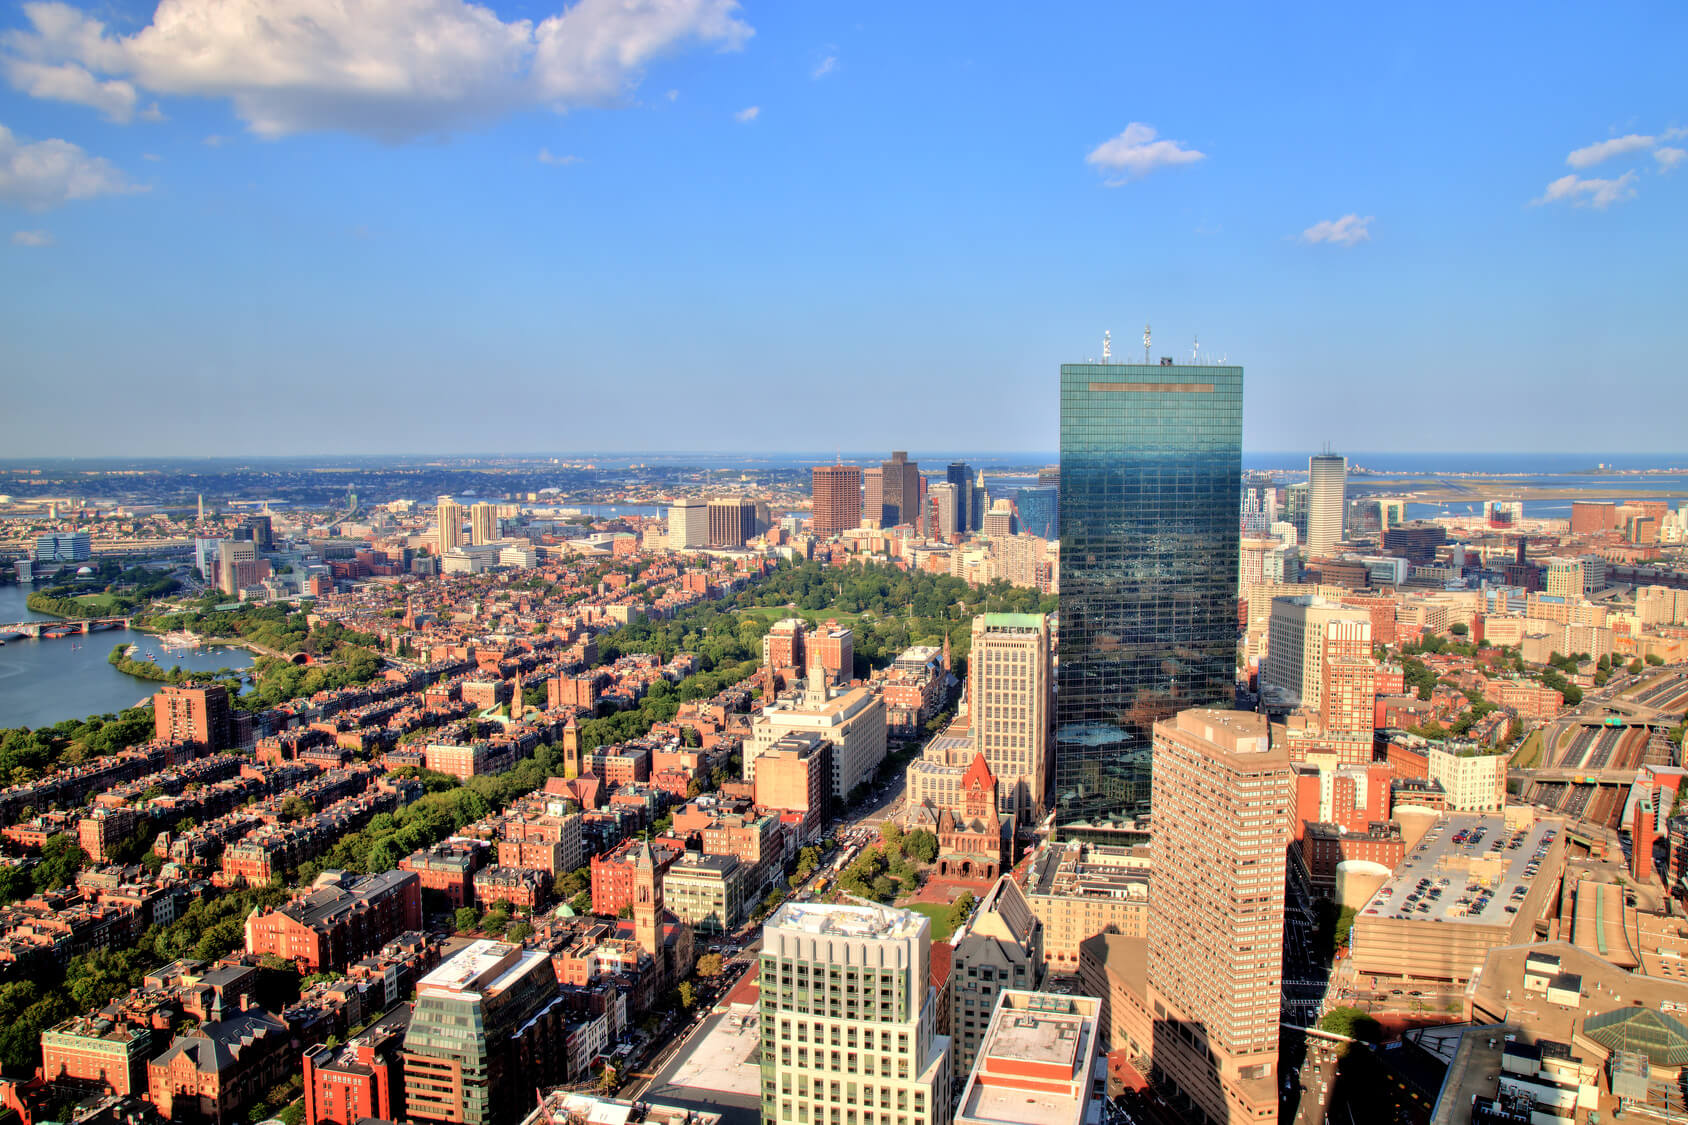 Keywords: Boston, Aerial, View, City, Skyline, Usa, Urban, Massachusetts, America, Panorama, Downtown, Architecture, New, Building, Landmark, Cityscape, England, Metropolis, Sunny, Blue, Cloudy, Cloudy, Street, Sky, Highway, Blue, Modern, Office, Skyscraper, Panoramic, Hancock, Travel, Historic, United, States, Sightseeing, Dusk, Light, Car, Panorama, Sunlight, Day